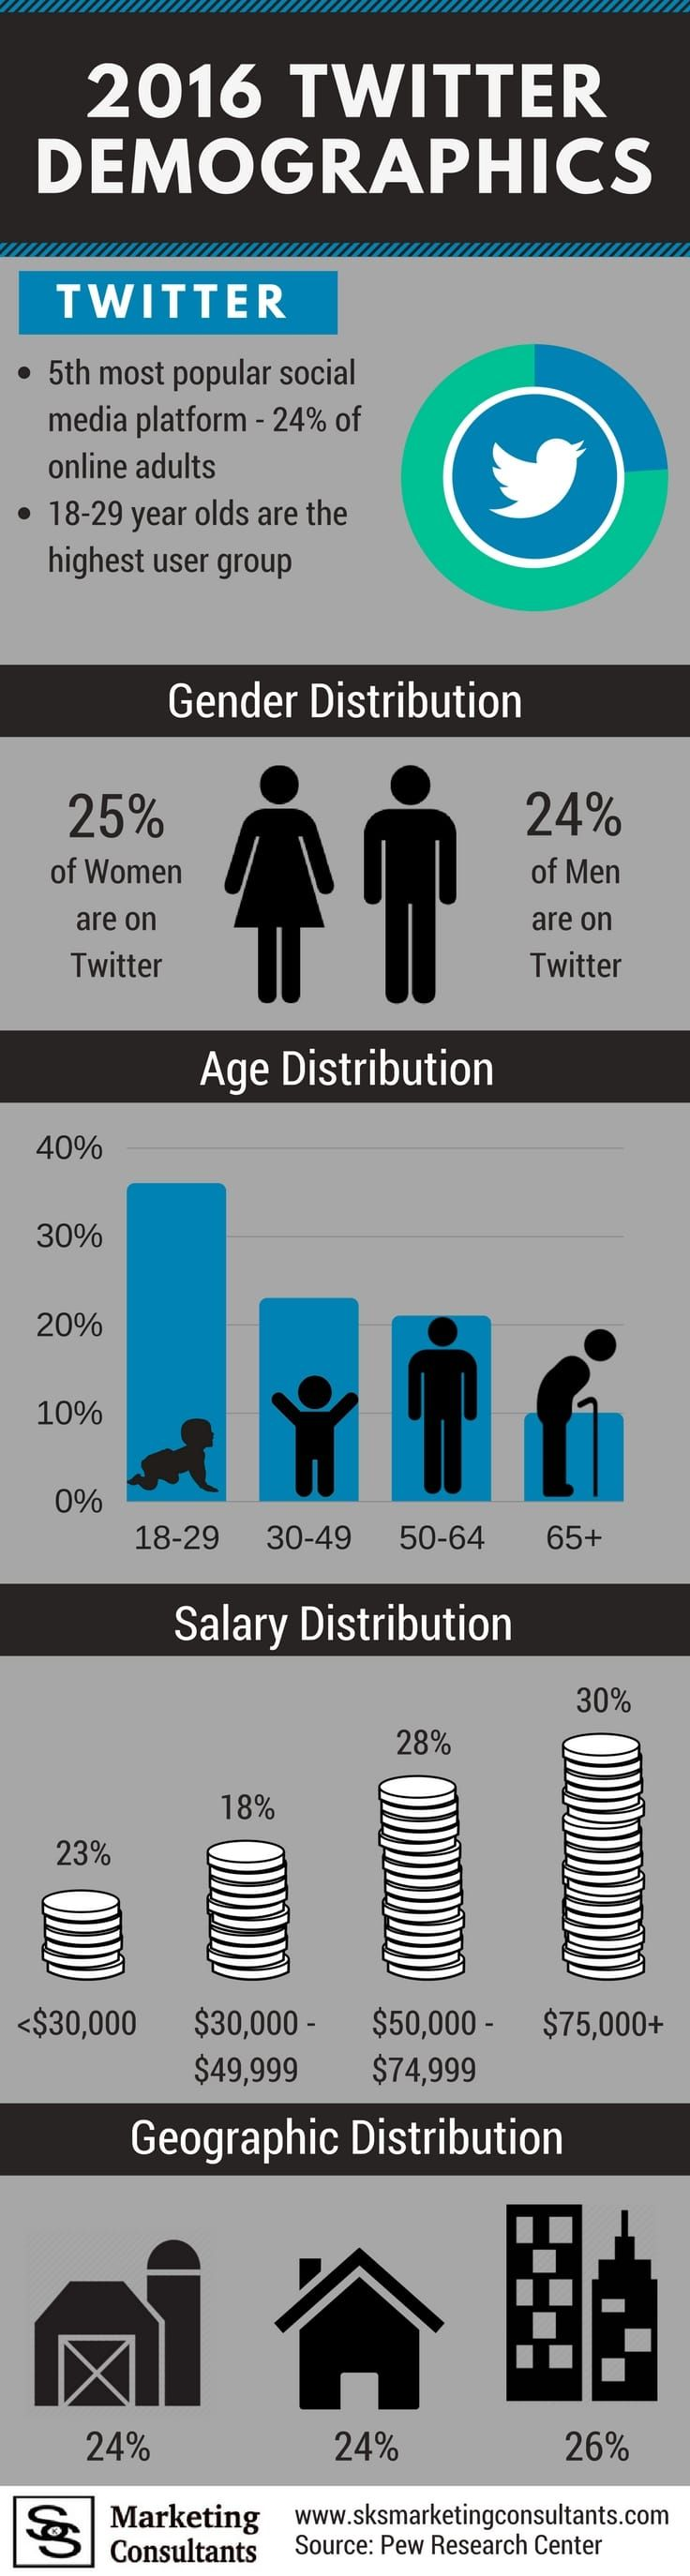 Twitter Demographics [INFOGRAPHICS]  Learn about 2016 Twitter Demographics including gender, age, salary, geography distribution. Find out if your business should be using Twitter Marketing for your 2017 marketing strategy.  #Twitter #TwitterMarketing #socialmedia #socialmediamarketing #twitterdemographics #twitterinfographic #infographic #socialmediainfographic